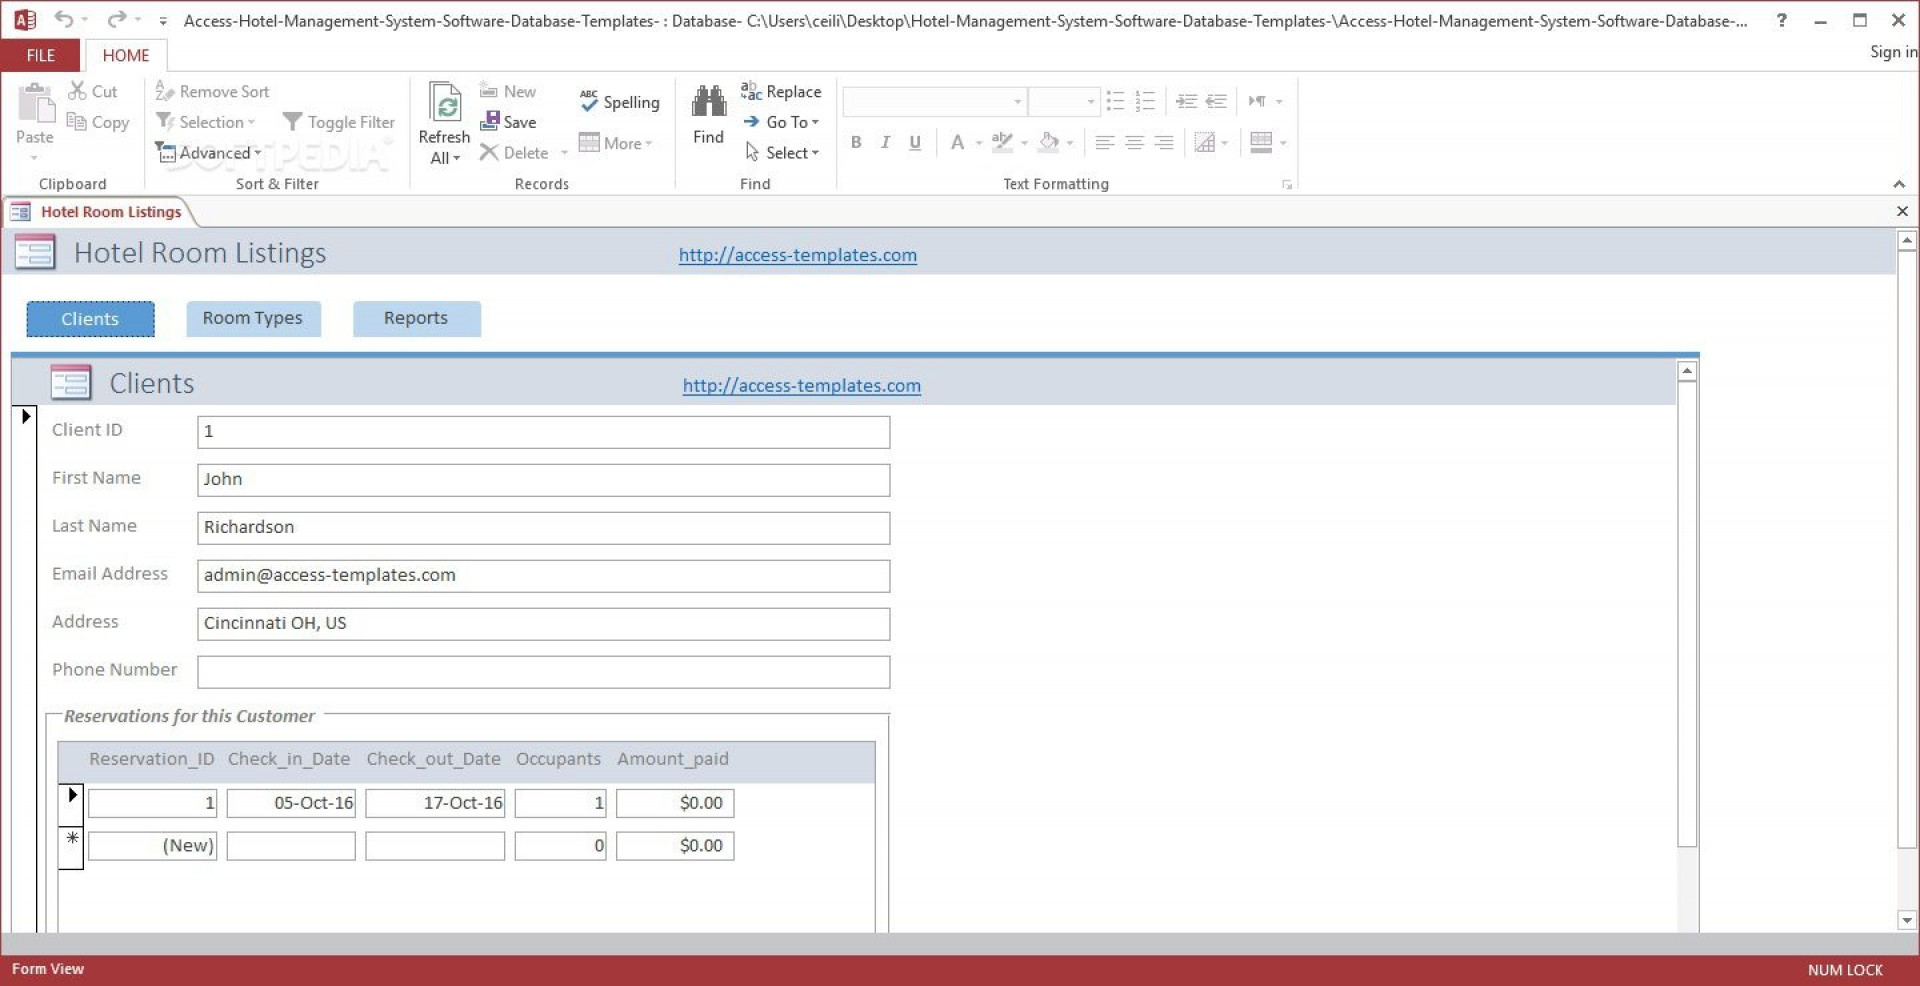 006 Formidable Free Acces Database Template Picture  Templates For Small Busines Hr Microsoft Inventory1920